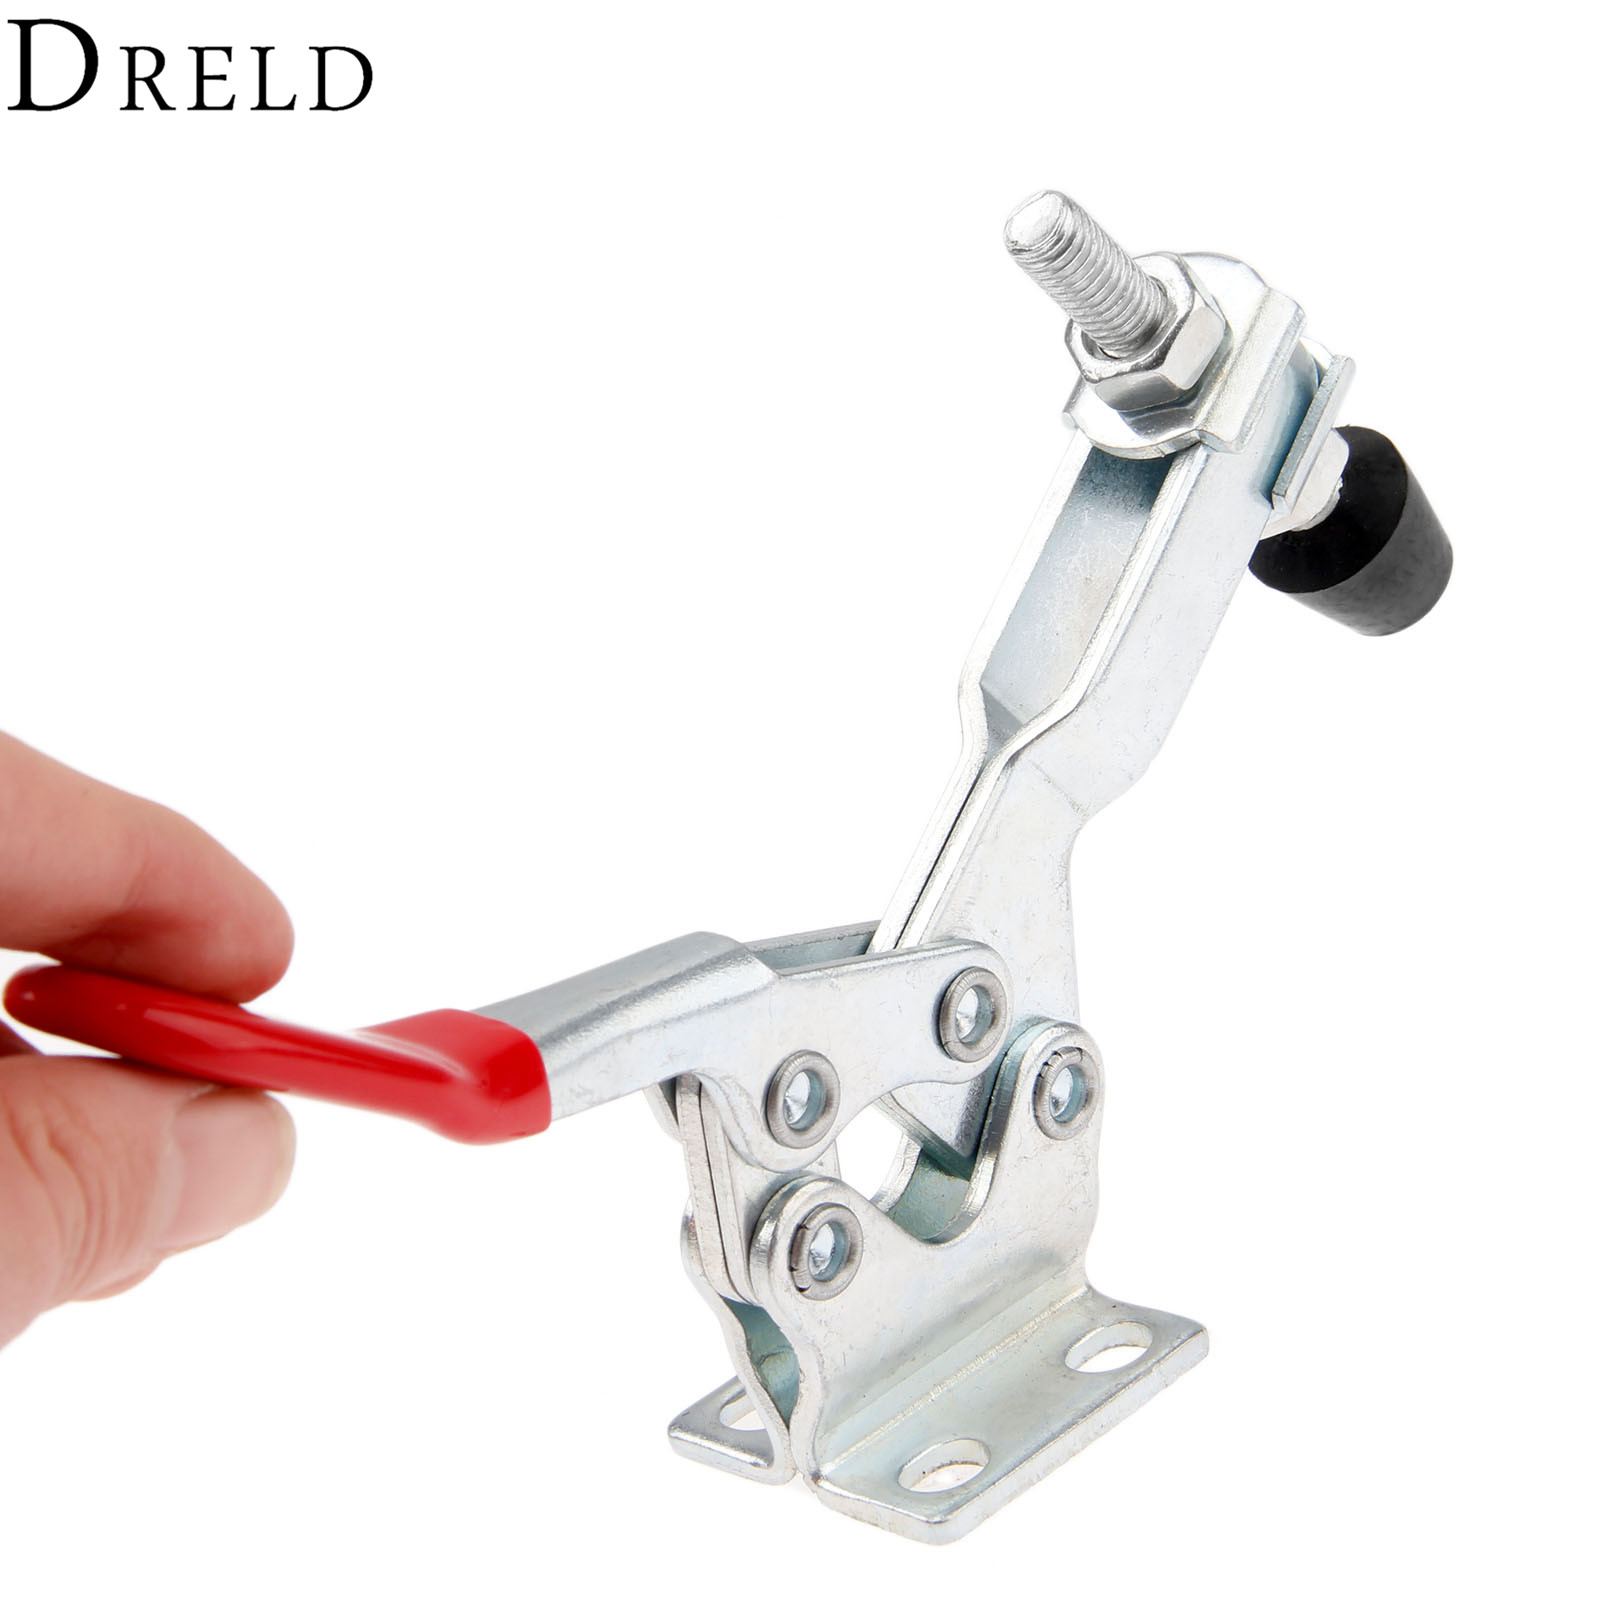 DRELD 1pc GH-225-D Horizontal Toggle Clamp Clip 227Kg 500 Lbs Holding Capacity Quick Release Metal Clamping Toggle Hand Tools